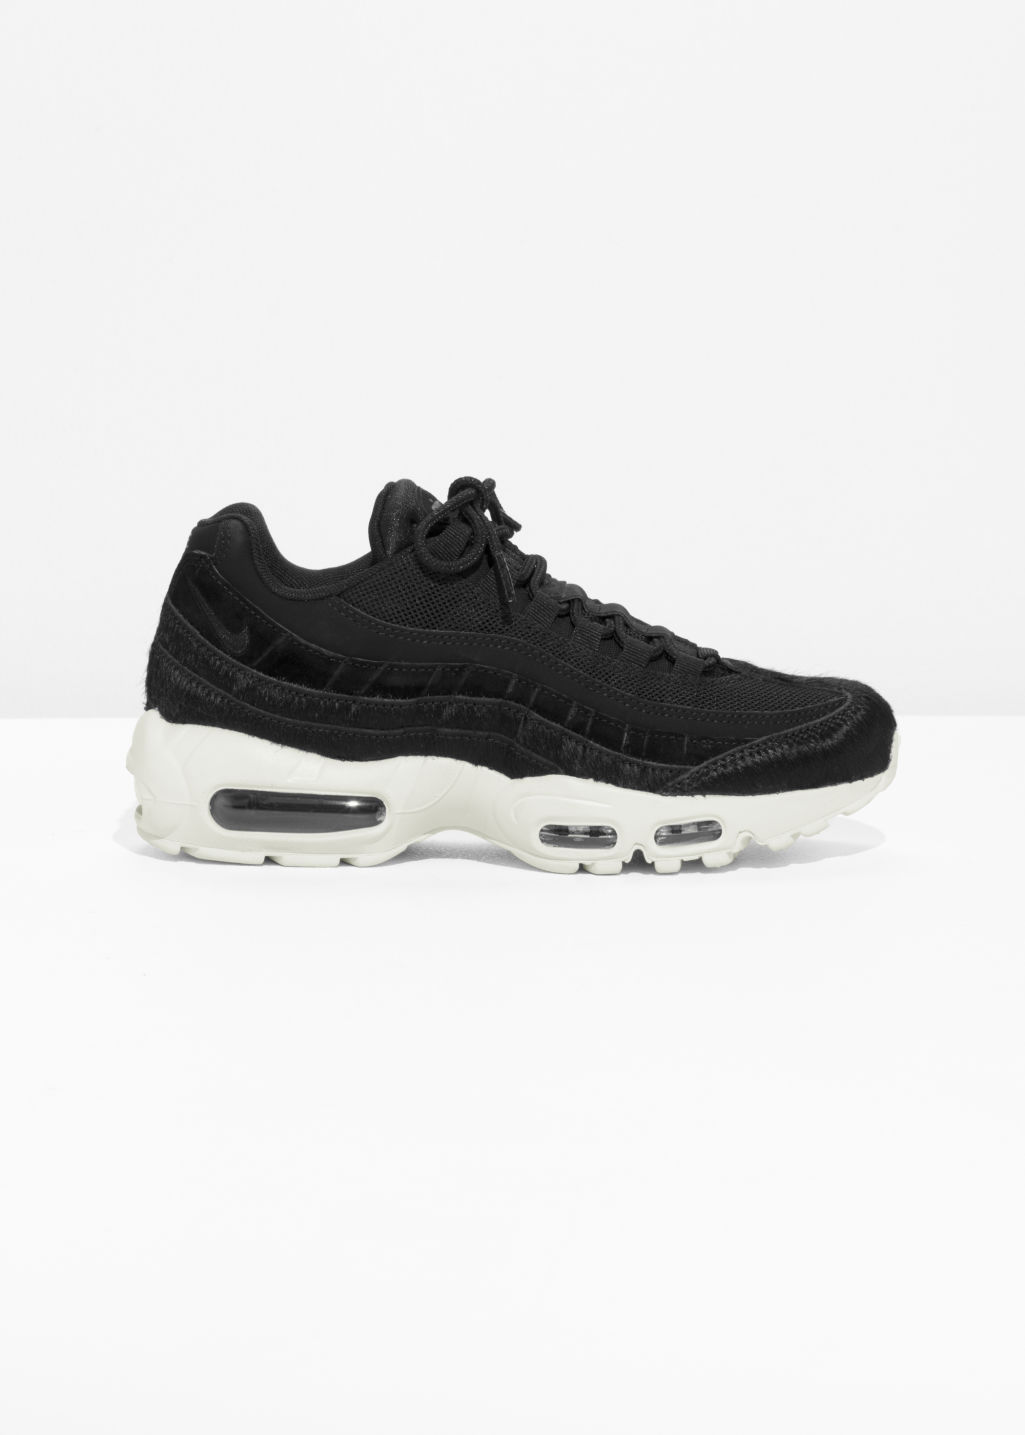 & OTHER STORIES Nike Air Max 95 Lx iS71WCE0ZY